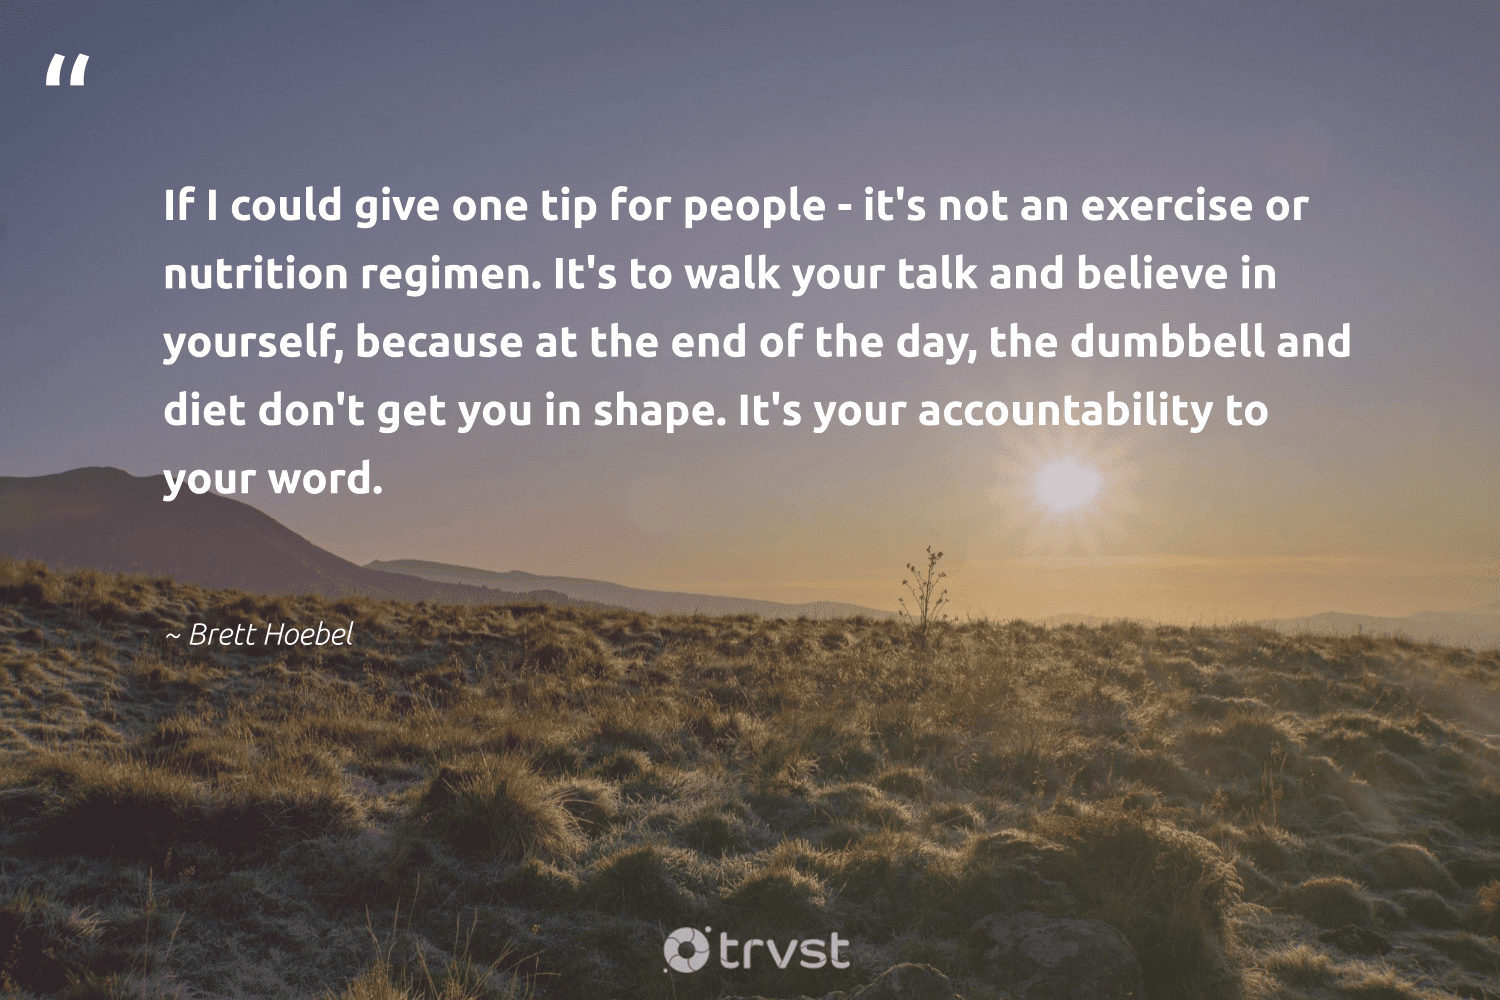 """""""If I could give one tip for people - it's not an exercise or nutrition regimen. It's to walk your talk and believe in yourself, because at the end of the day, the dumbbell and diet don't get you in shape. It's your accountability to your word.""""  - Brett Hoebel #trvst #quotes #eatclean #nutrition #exercise #nevergiveup #begreat #socialchange #healthylifestyle #health #togetherwecan #dogood"""